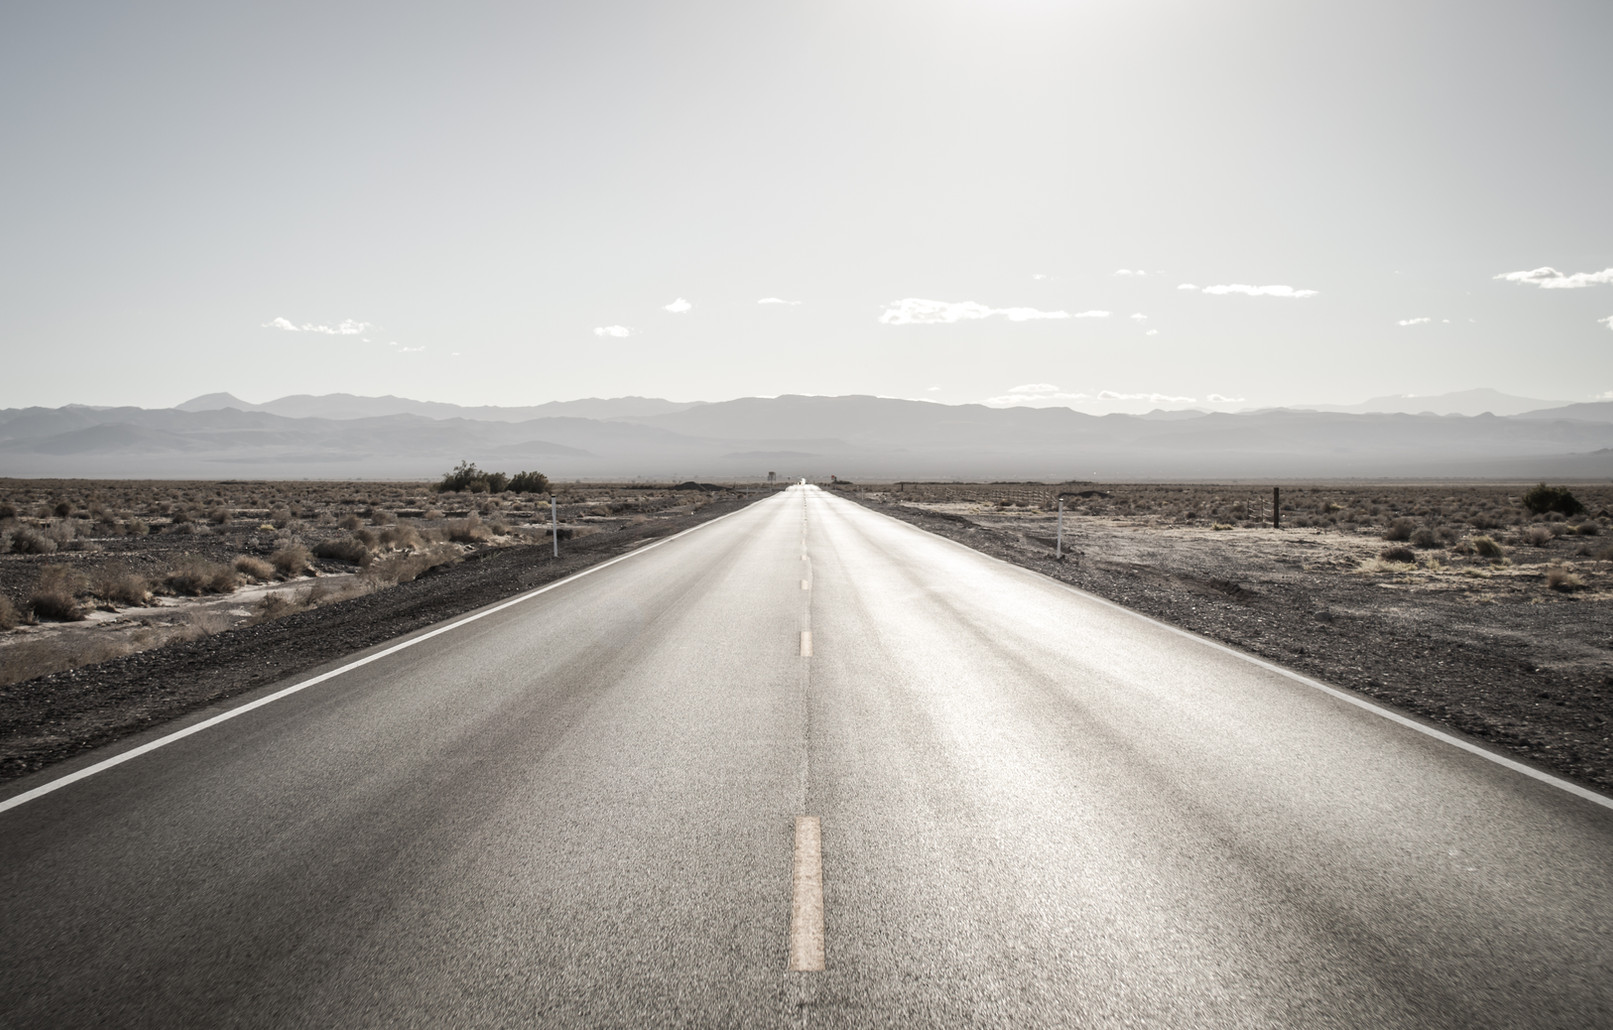 The road to Death Valley.